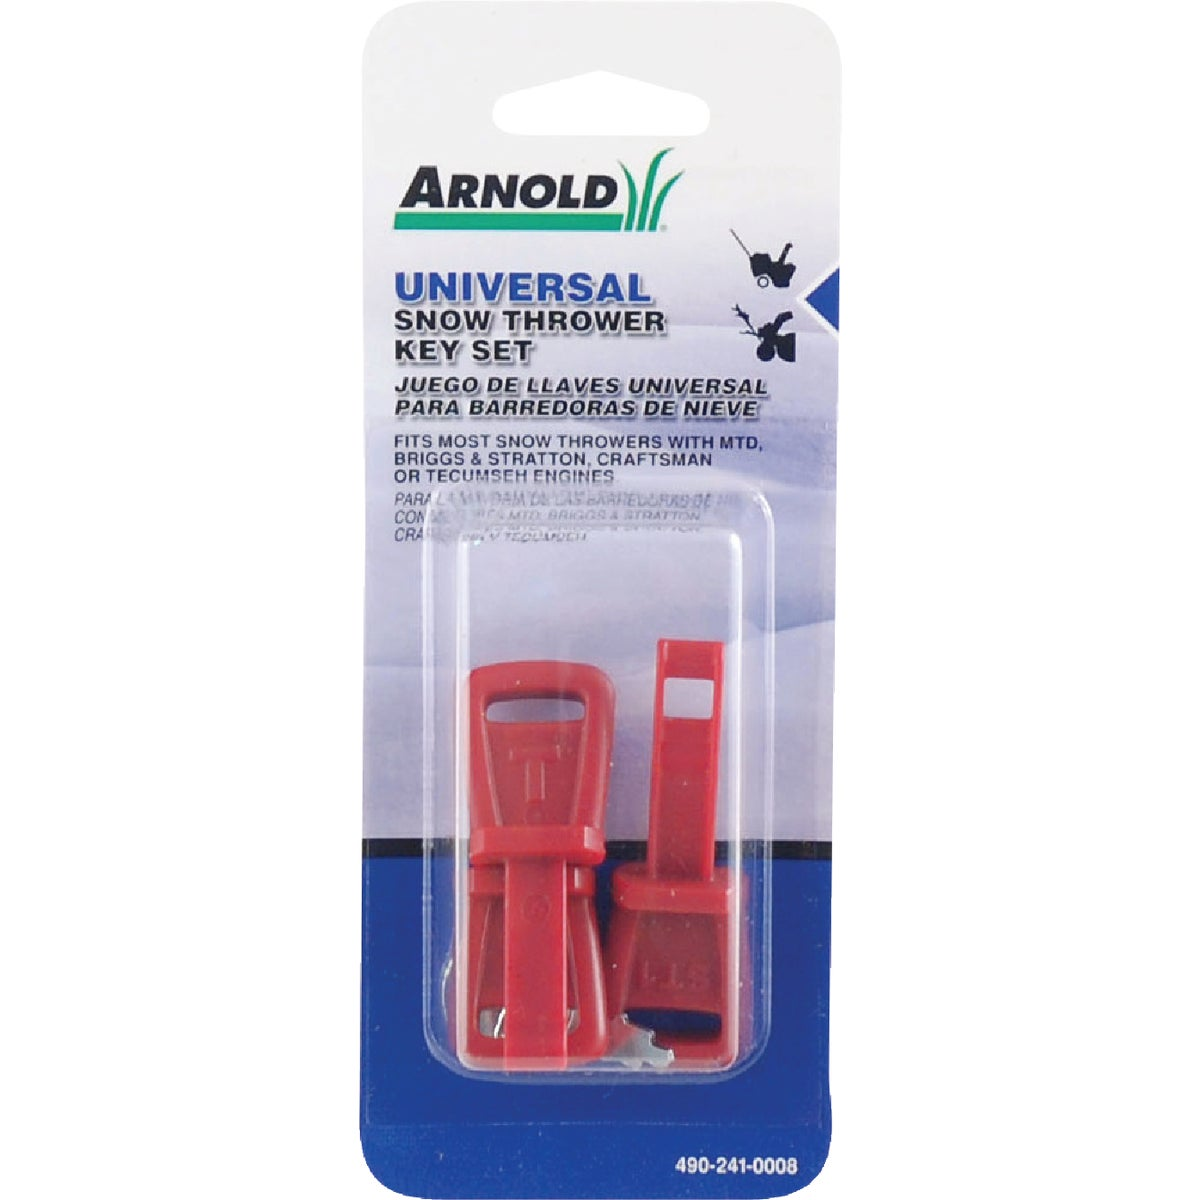 UNIV SNOWTHRWR KEY SET - 490-241-0008 by Arnold Corp